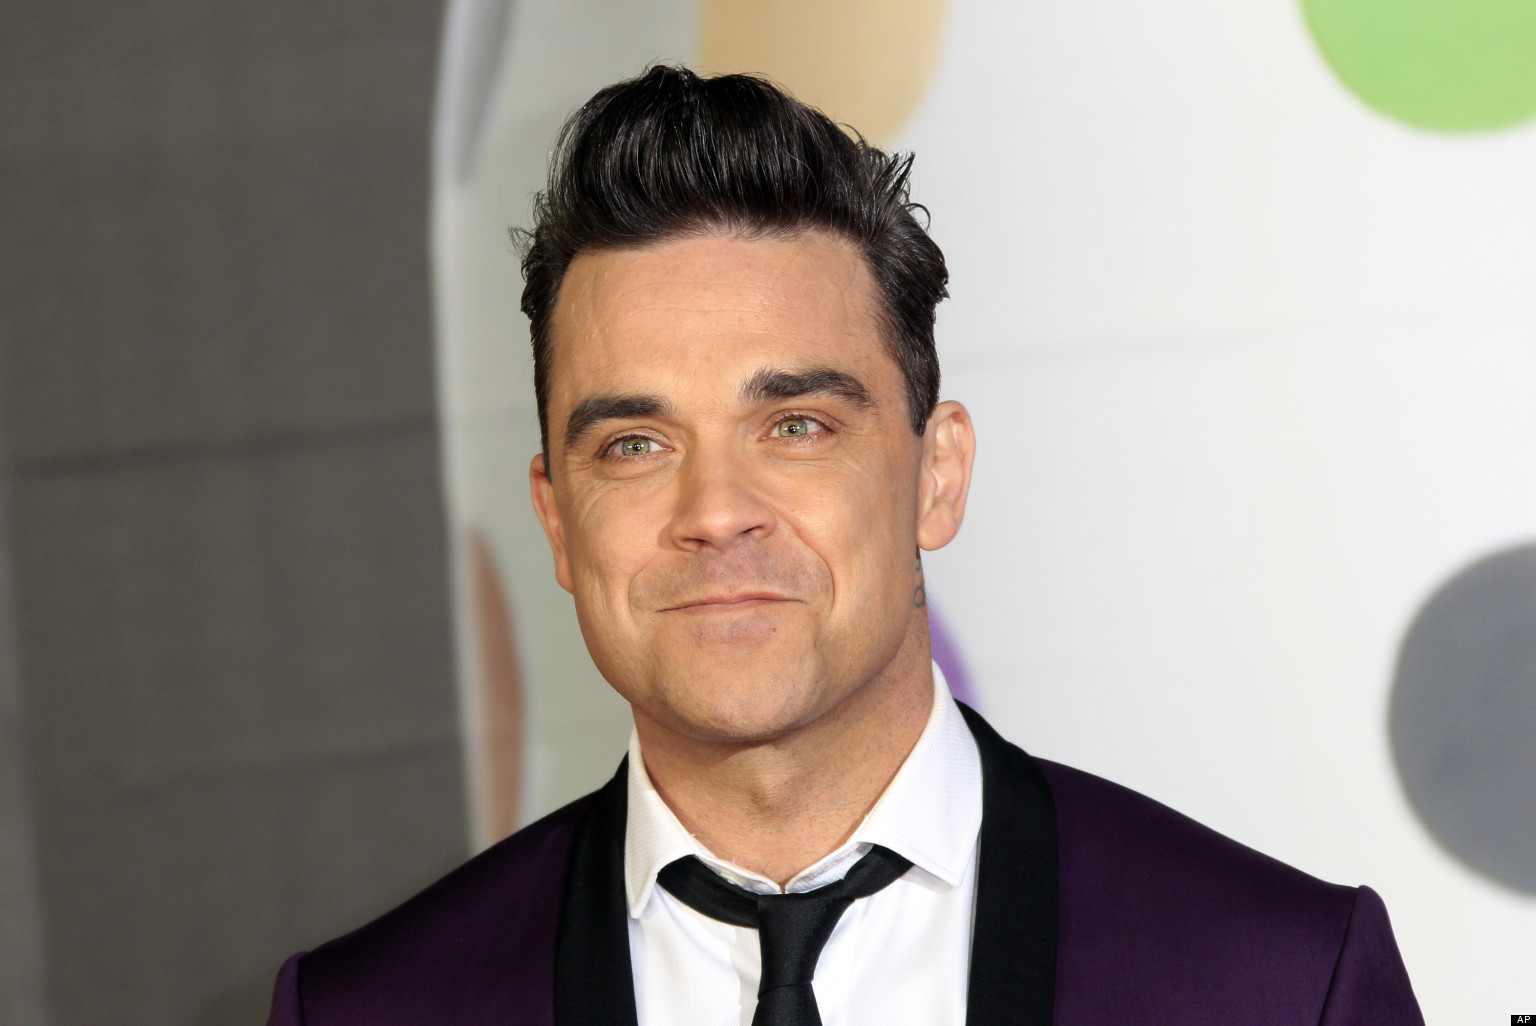 robbie williams слушатьrobbie williams party like a russian, robbie williams feel, robbie williams supreme, robbie williams love my life, robbie williams angels, robbie williams feel скачать, robbie williams спб, robbie williams supreme перевод, robbie williams скачать, robbie williams rock dj, robbie williams - feel перевод, robbie williams слушать, robbie williams supreme скачать, robbie williams mixed signals, robbie williams russian, robbie williams angels скачать, robbie williams candy, robbie williams feel lyrics, robbie williams angels lyrics, robbie williams wiki